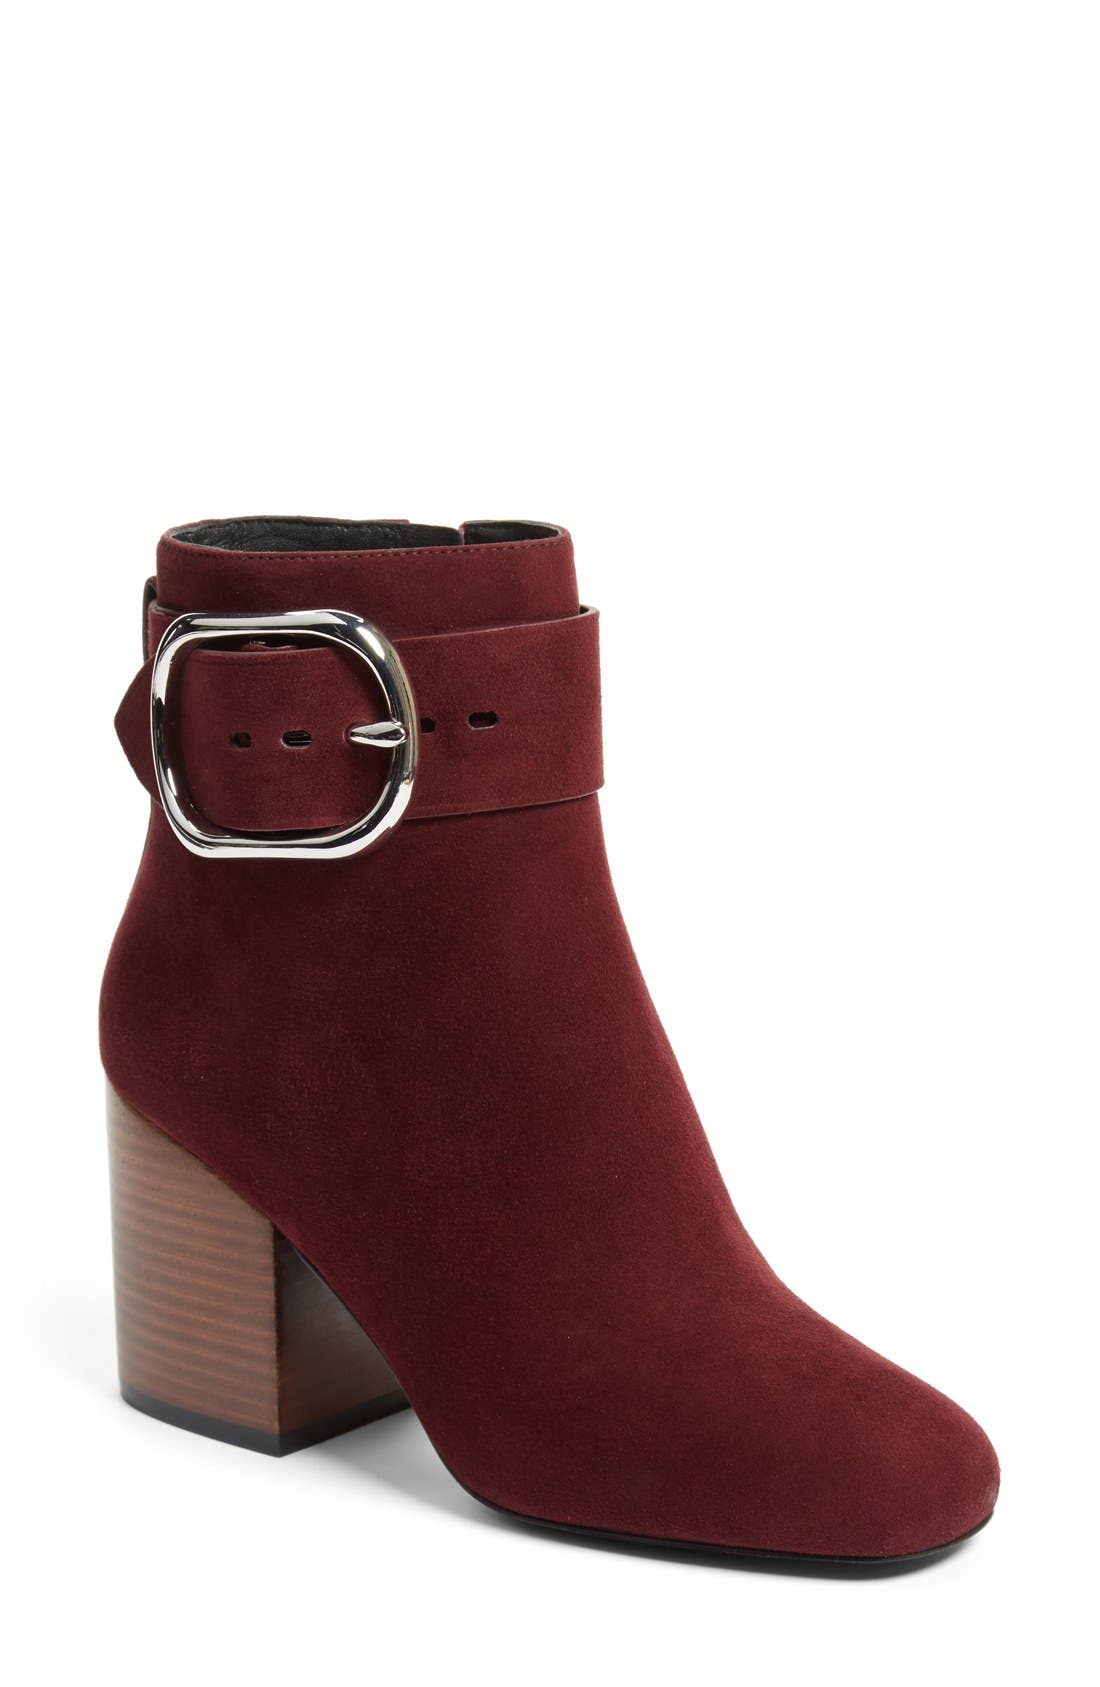 'Kenze' Bootie,                             Main thumbnail 1, color,                             930